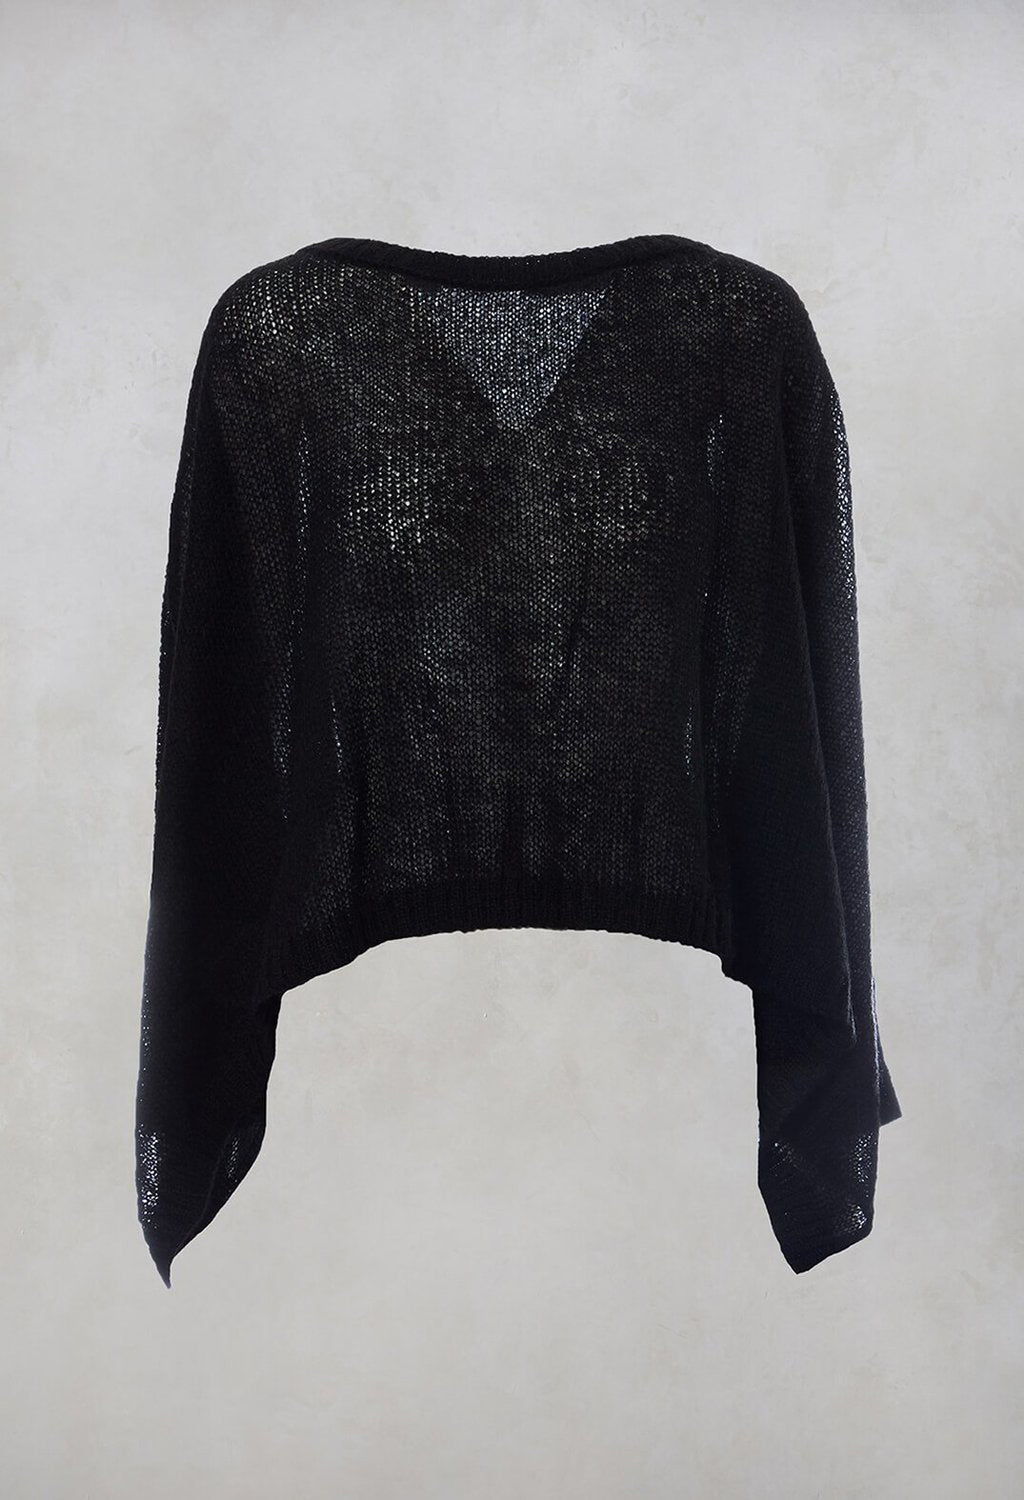 Bat Wing Jumper in Black